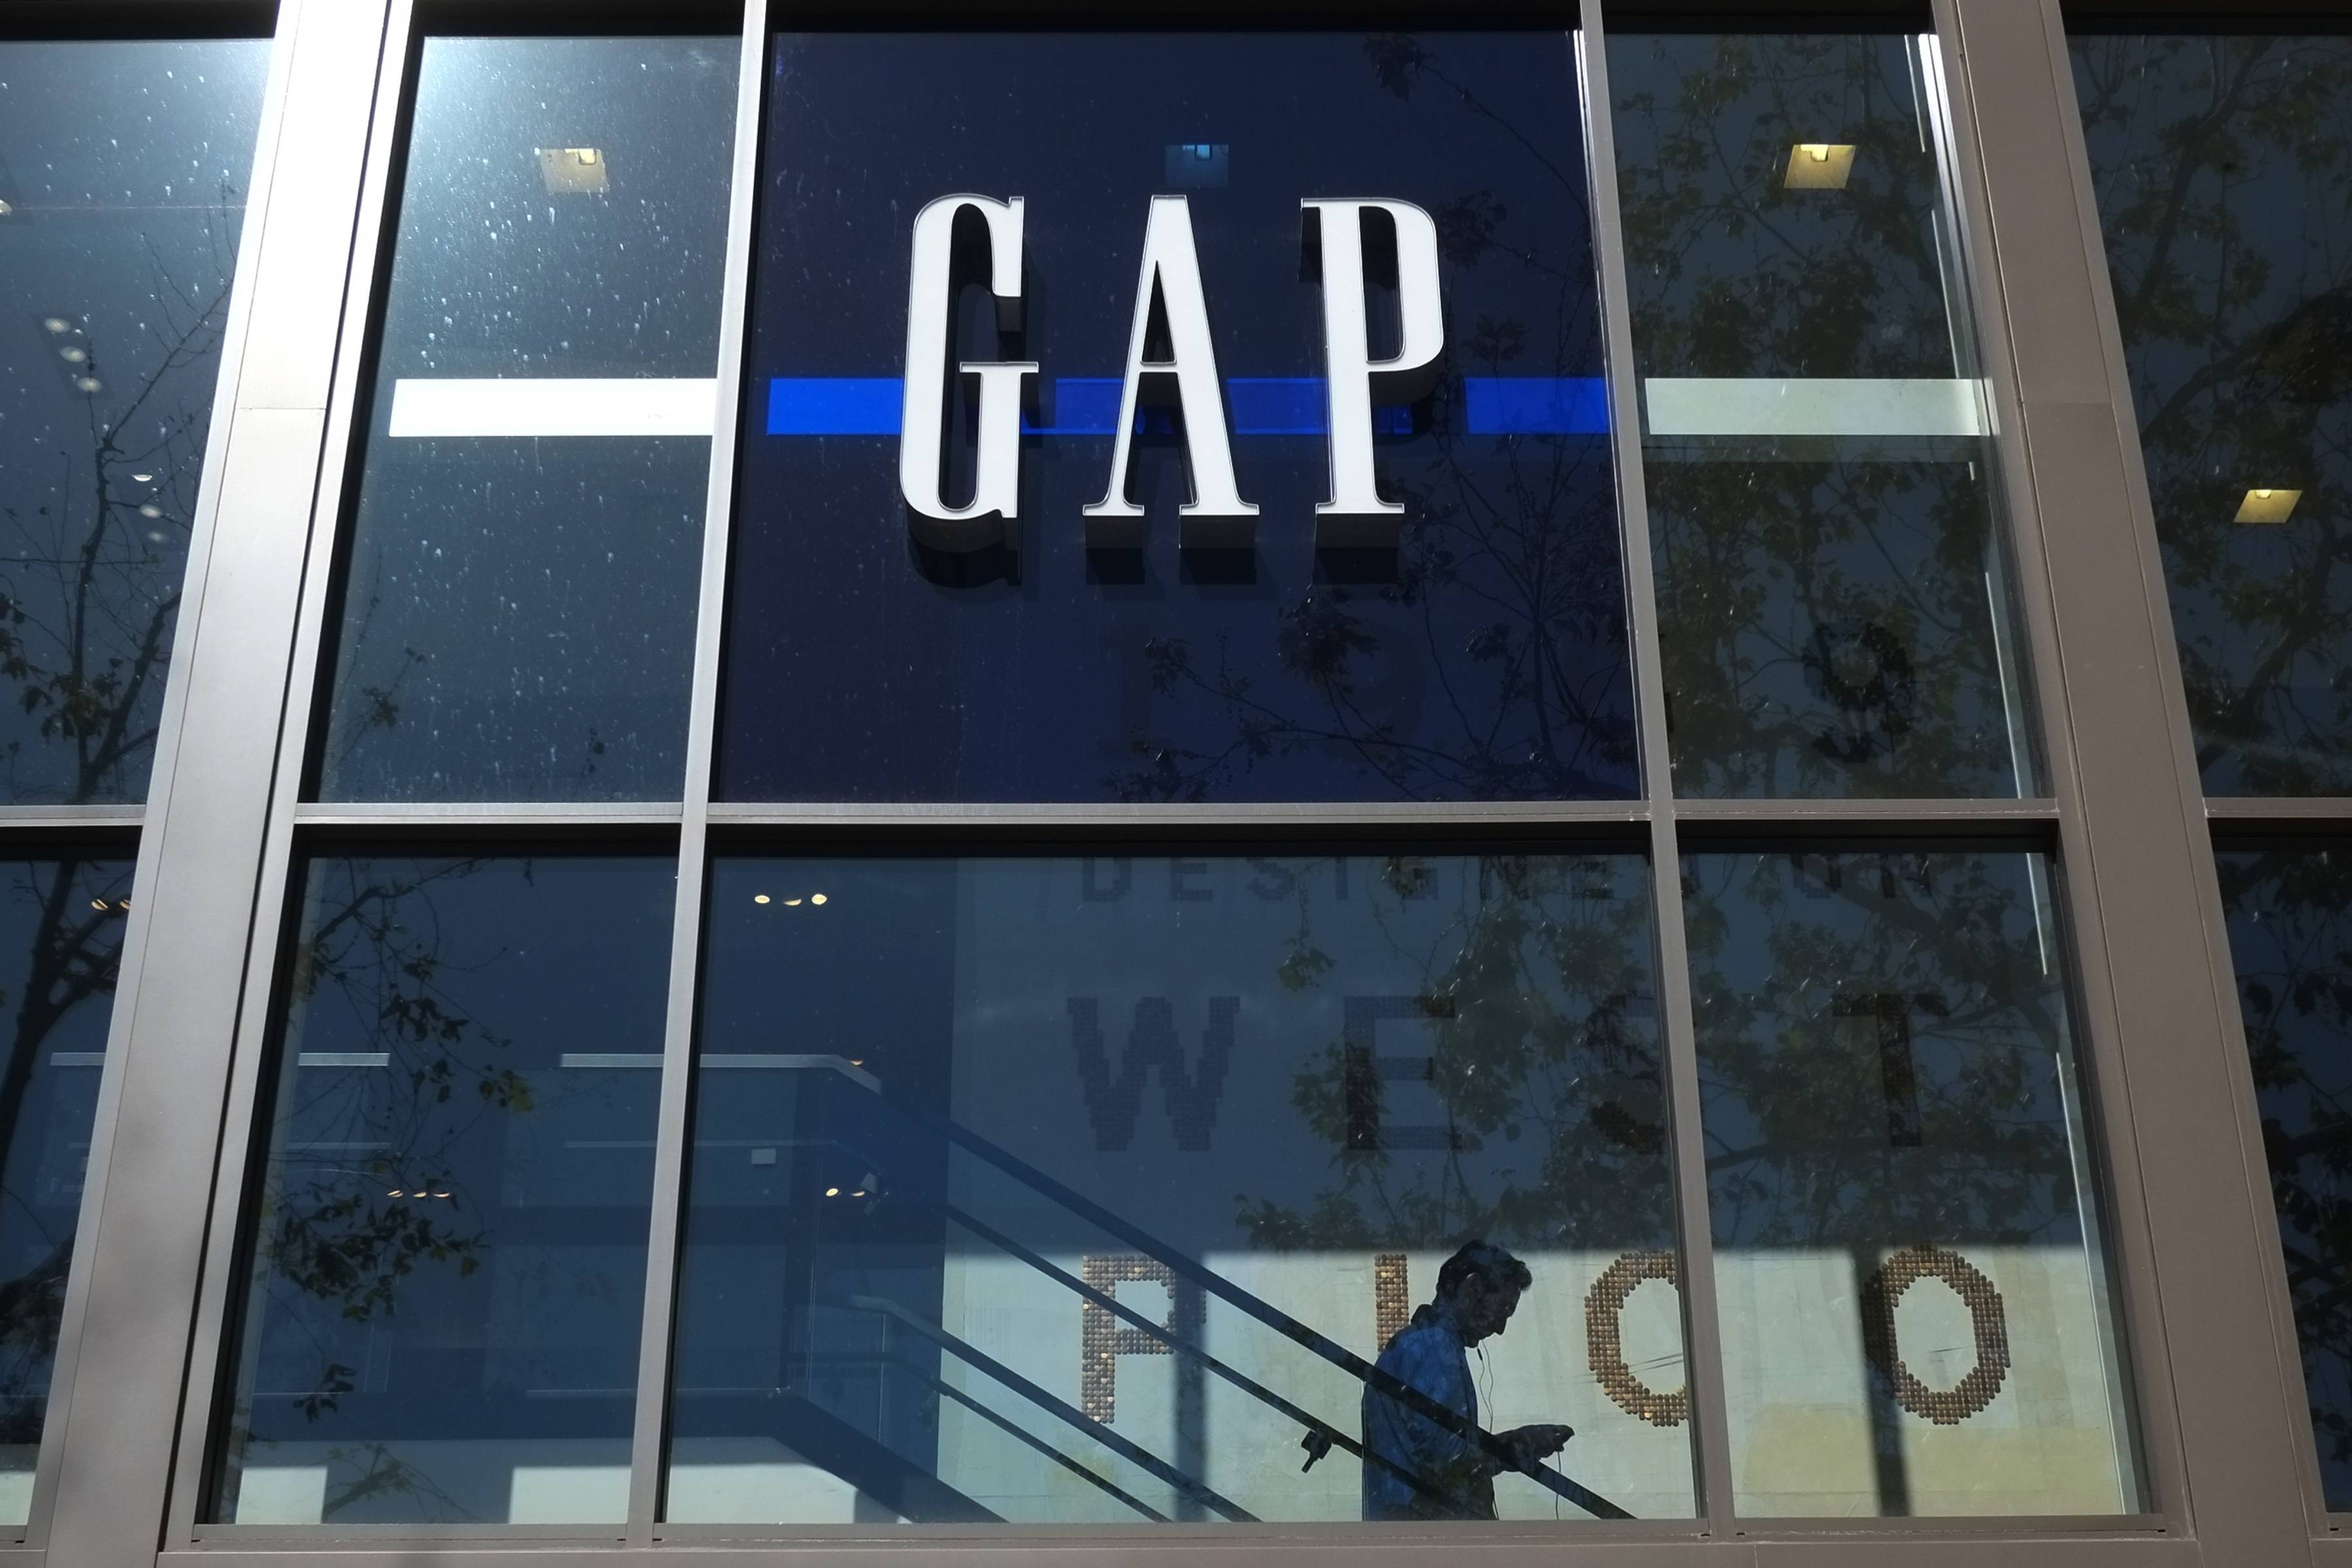 A shopper walks down the steps at a Gap store in Los Angeles. Gap Inc. has announced plans to produce clothing in Myanmar.